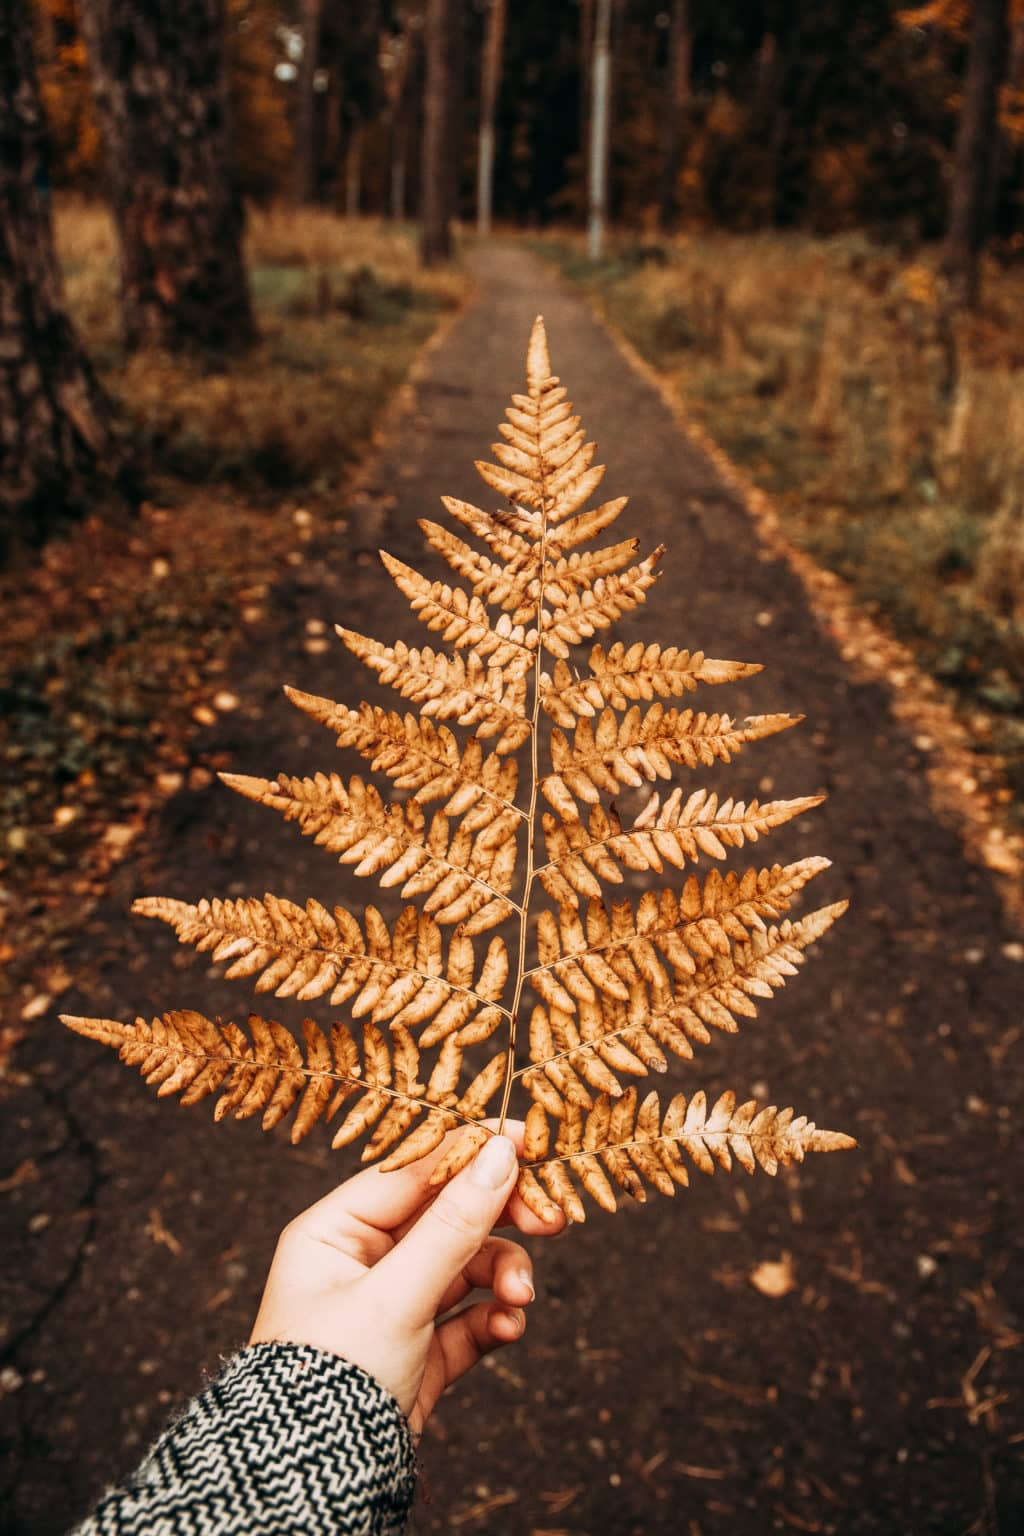 Hand holding a large fern leaf in front of a fall path lined with fallen tree leaves in autumn 2020 Hashtag #autumnleaf